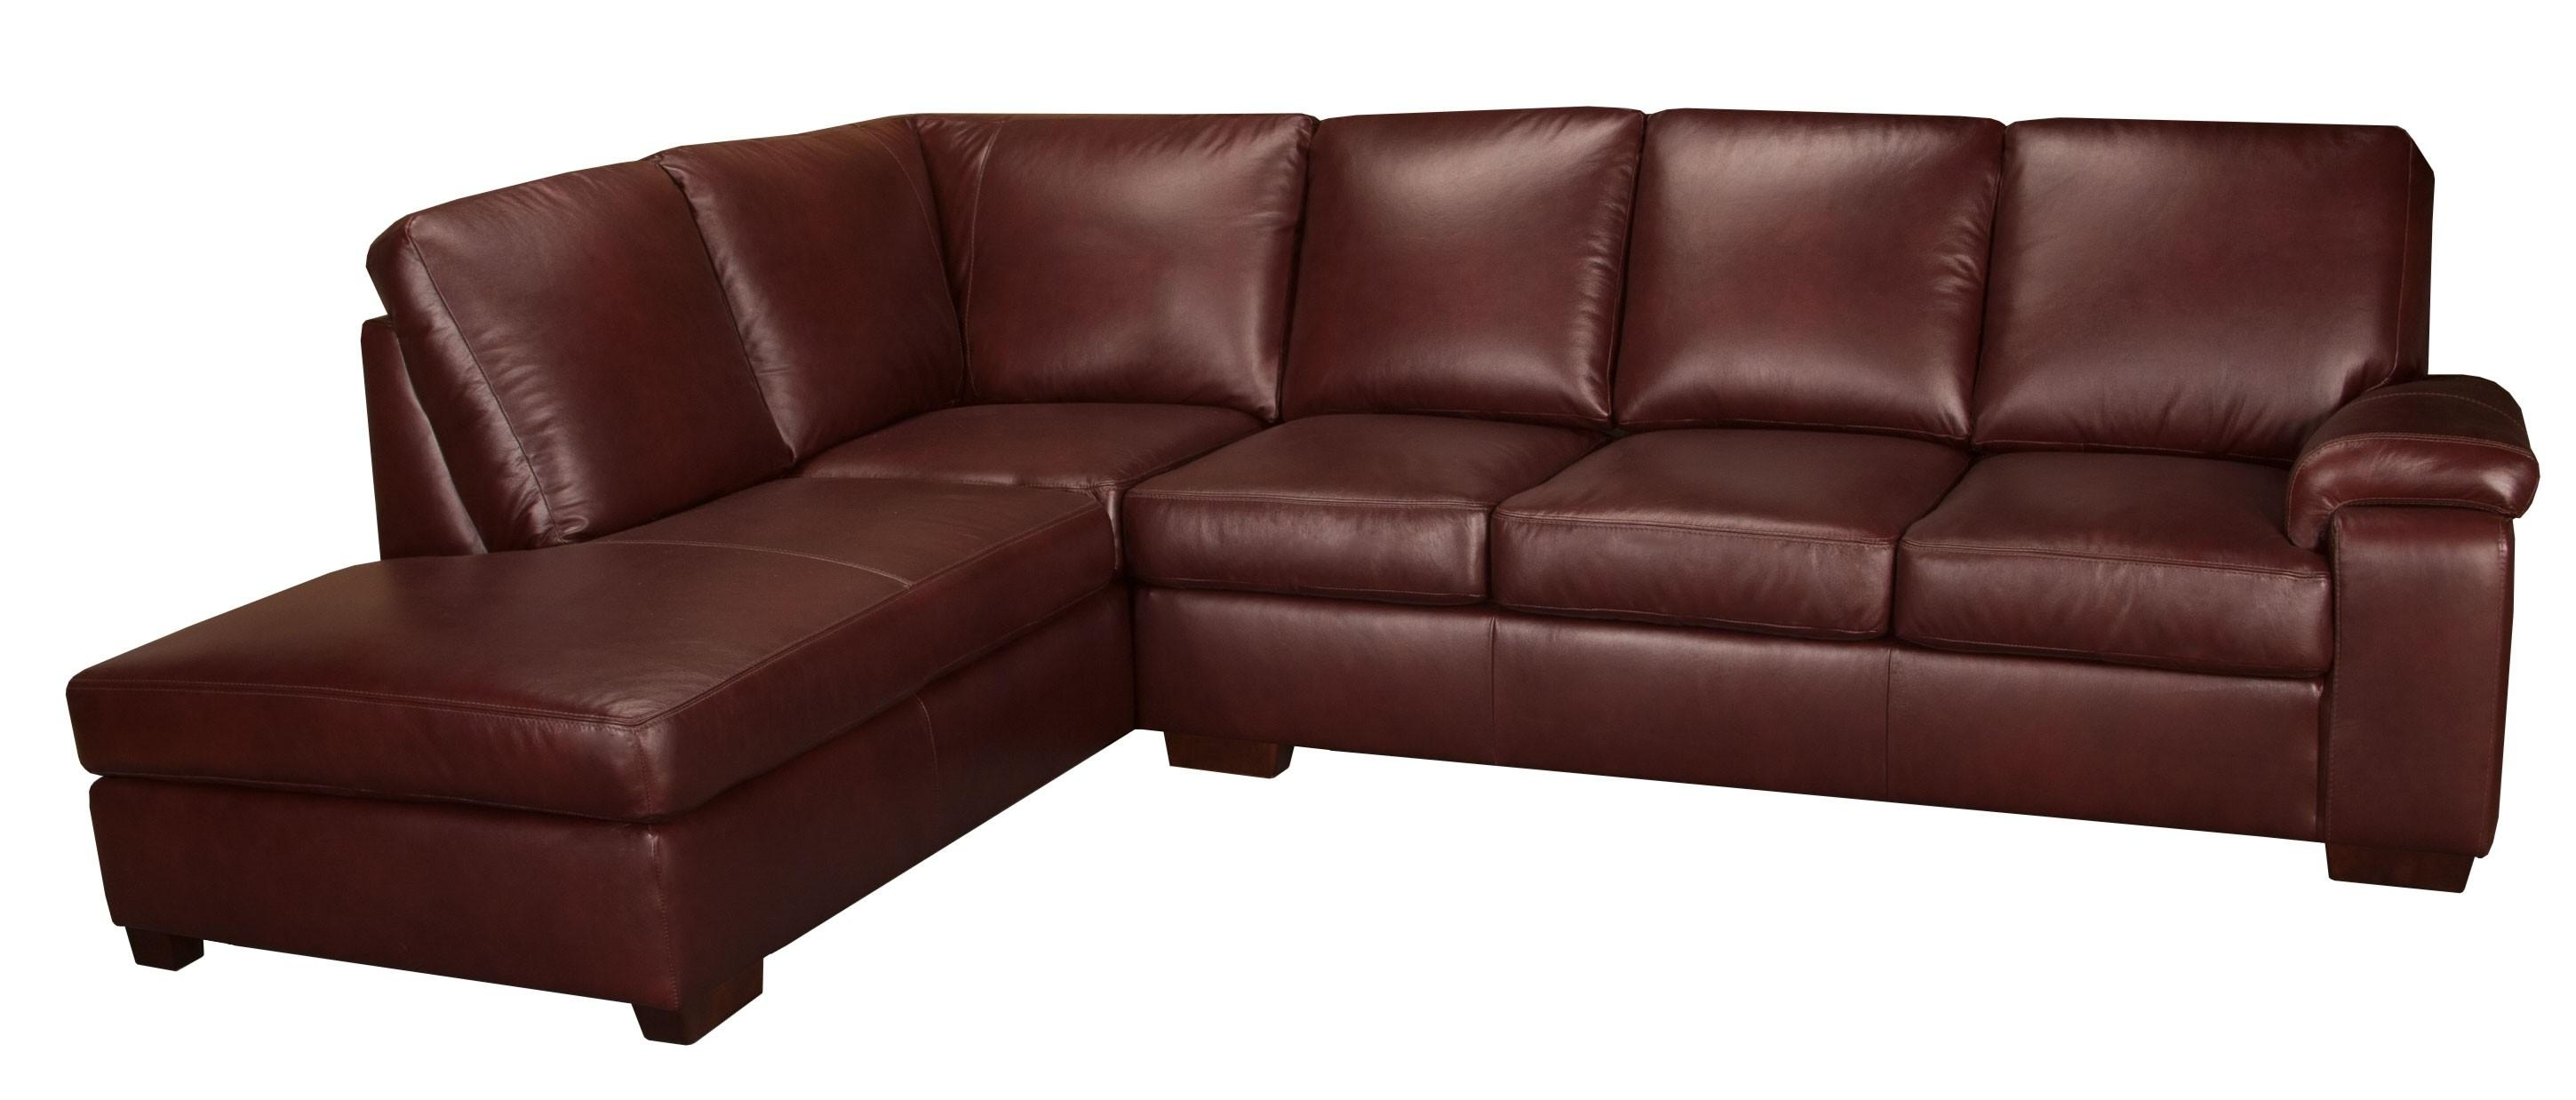 Genuine Leather Sectionals In Toronto & Mississauga | Living With Leather Sectional Sofas Toronto (View 4 of 20)